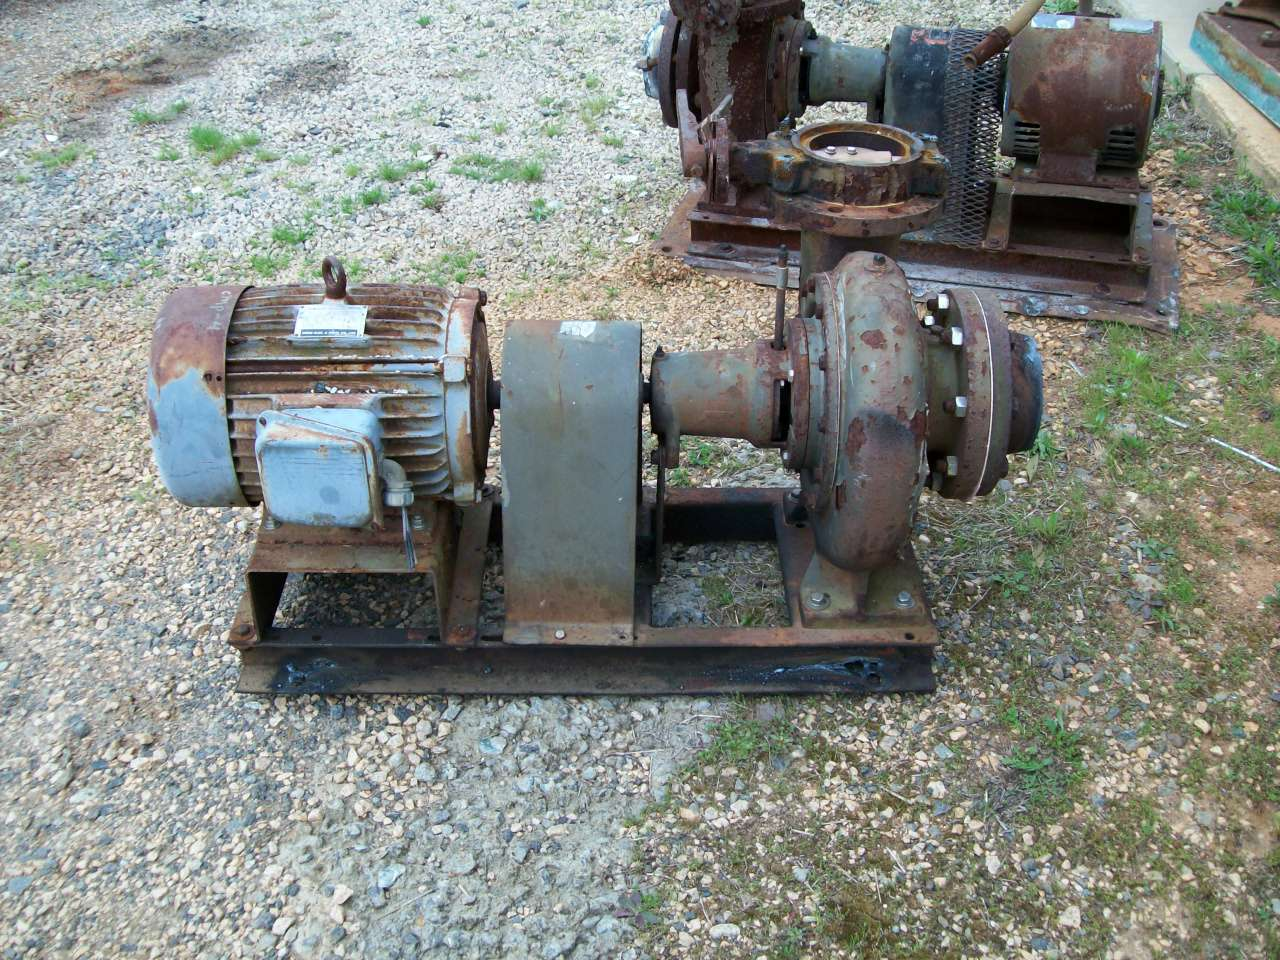 used pump Powered by 10HP Teco motor, S#XX276617045, 230/460, 1740 rpm, amps-24/12, TEFC 215T